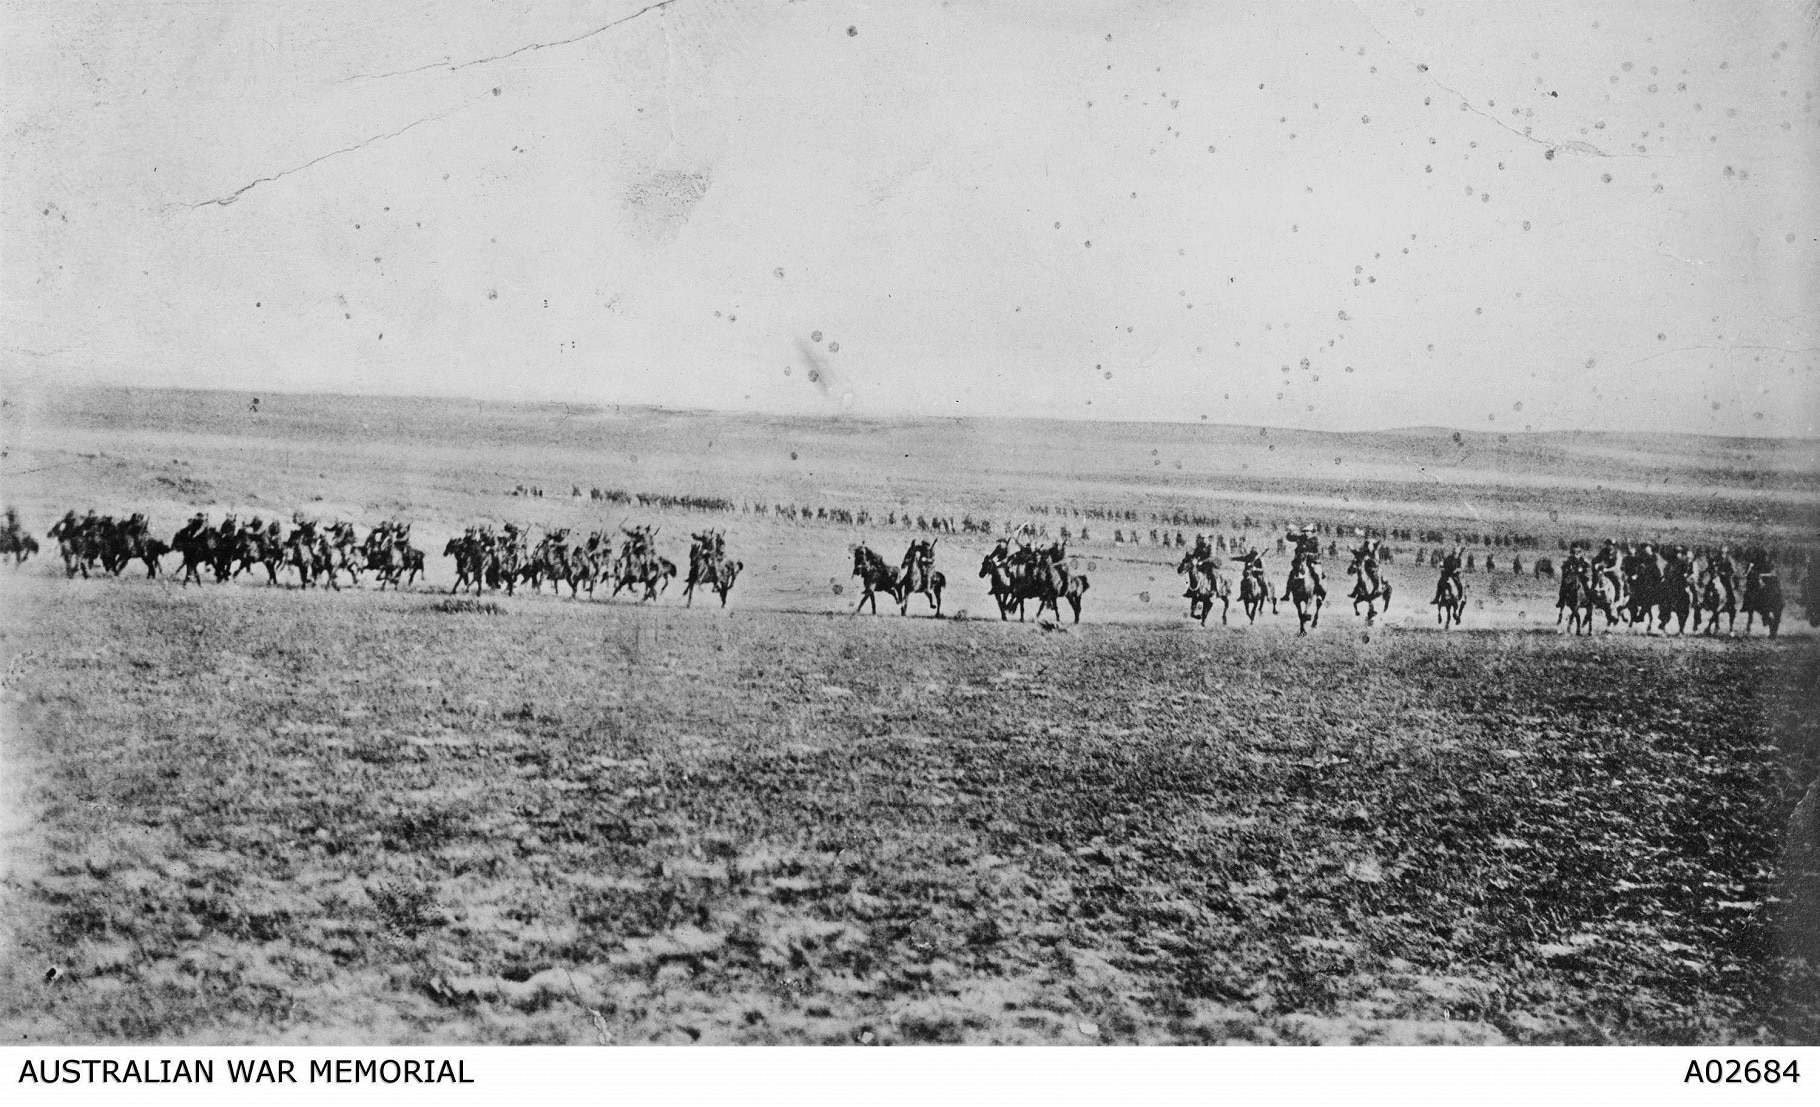 A charge of the 4th Light Horse Brigade